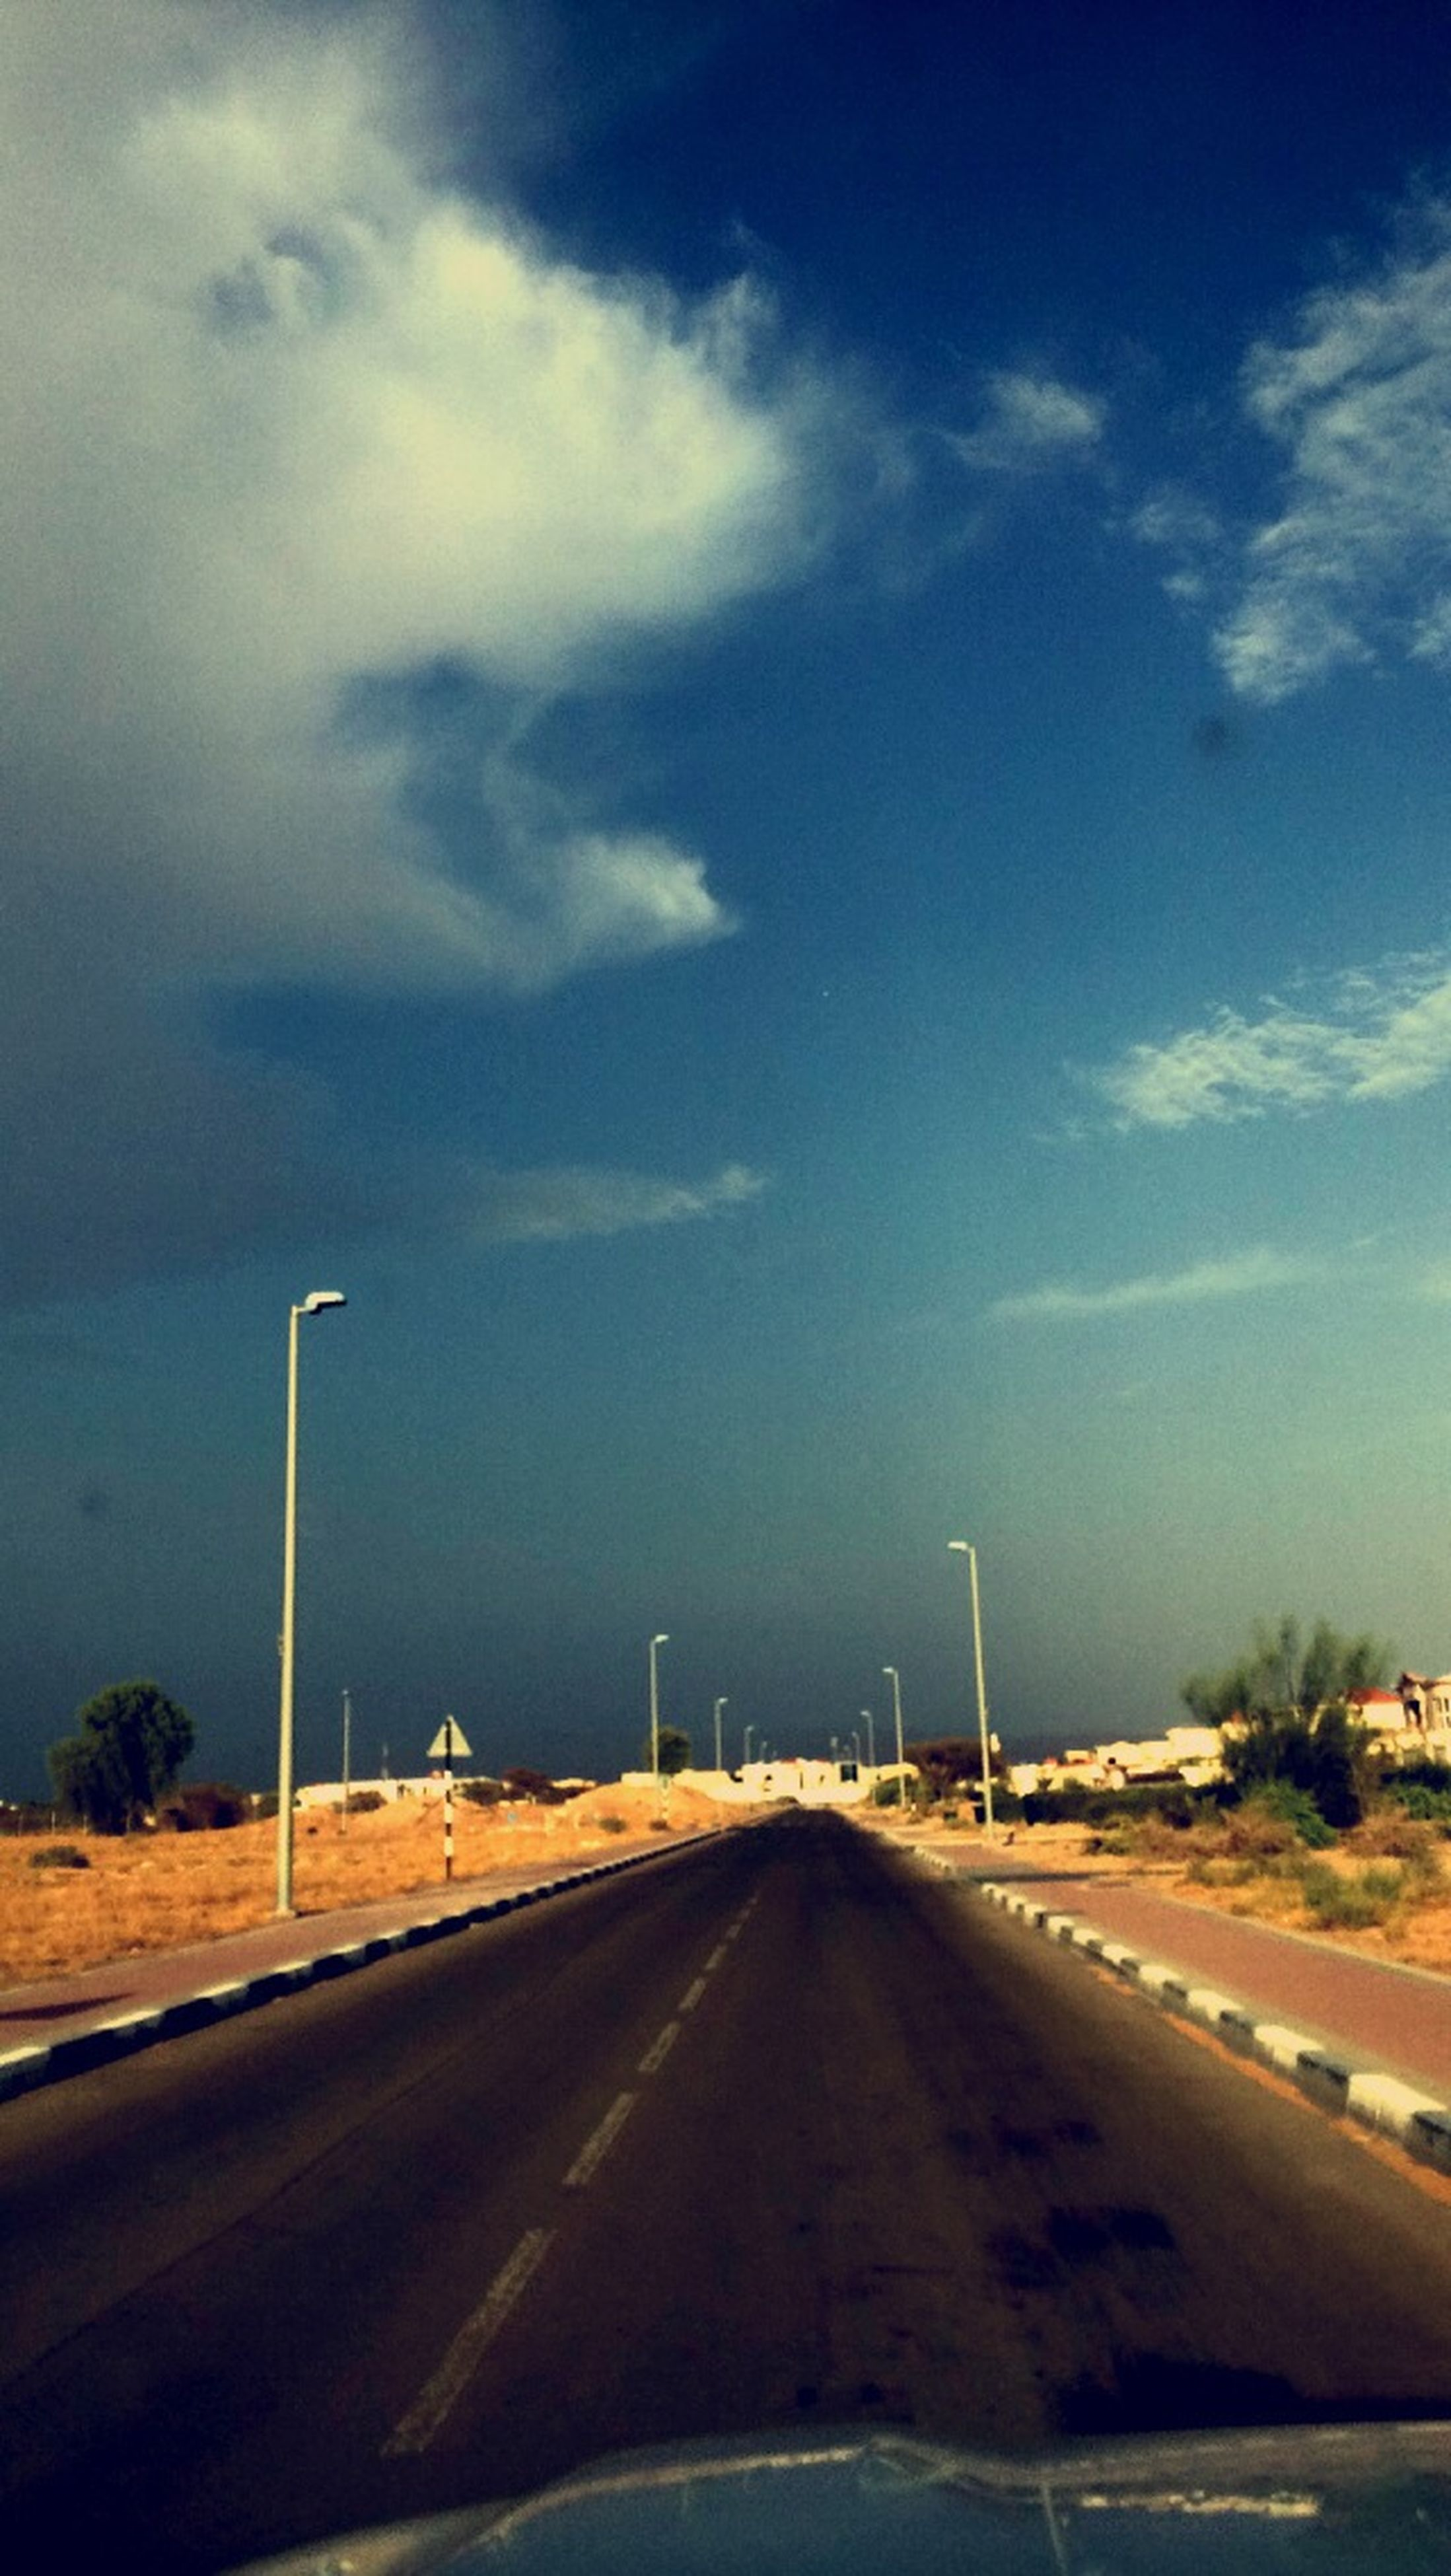 the way forward, road, sky, transportation, diminishing perspective, road marking, vanishing point, cloud - sky, street light, street, empty, asphalt, empty road, cloud, country road, cloudy, long, blue, outdoors, nature